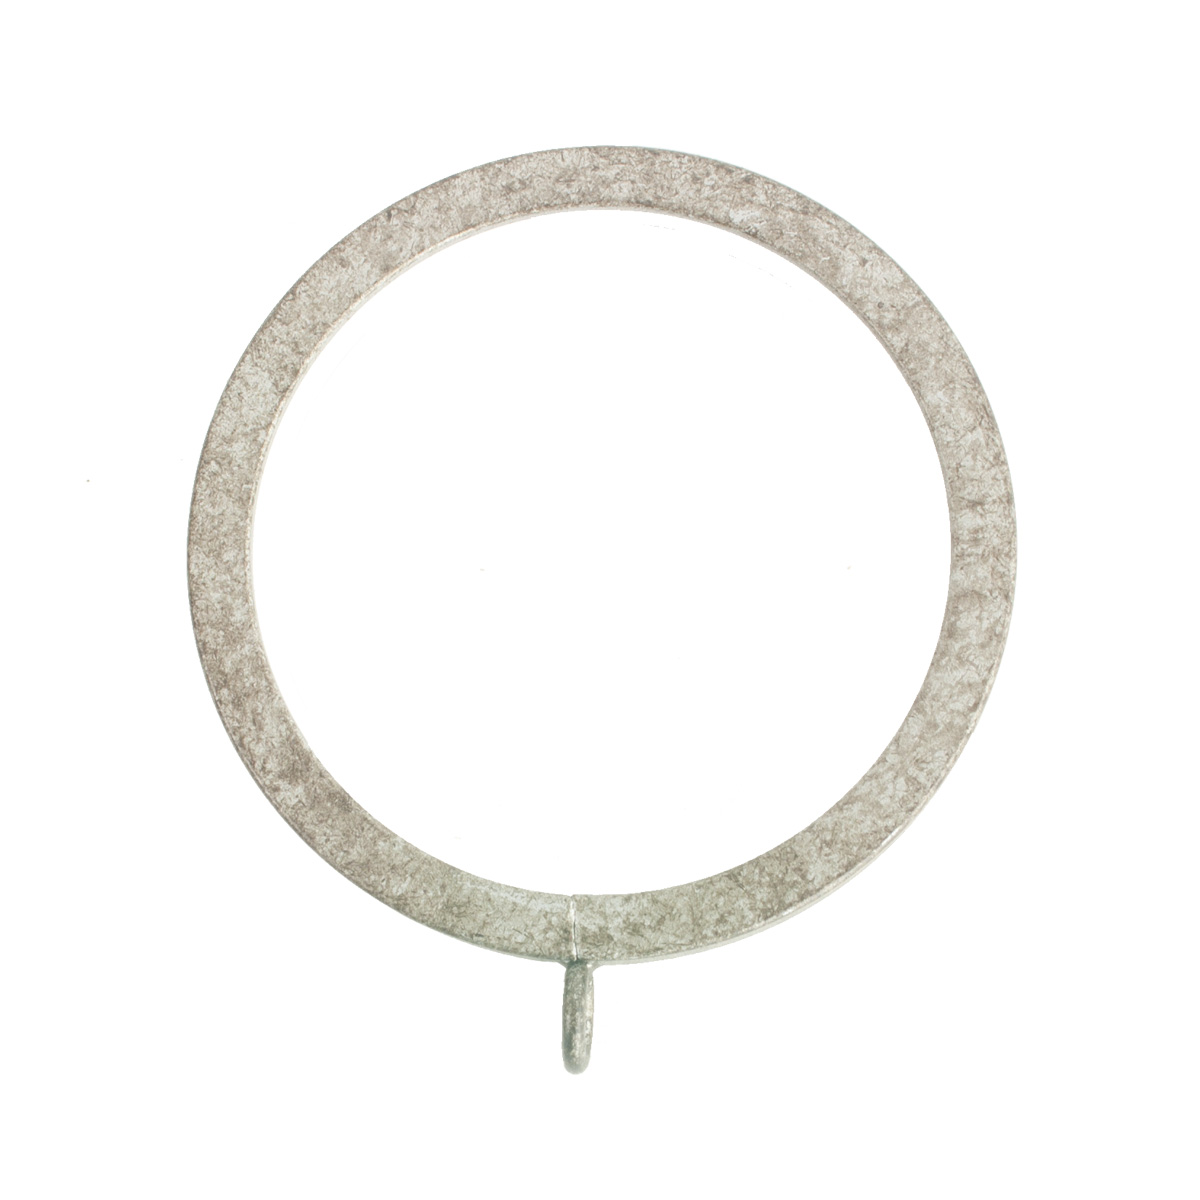 Flat Lined Rings 4 Silver (10 Per Pack)